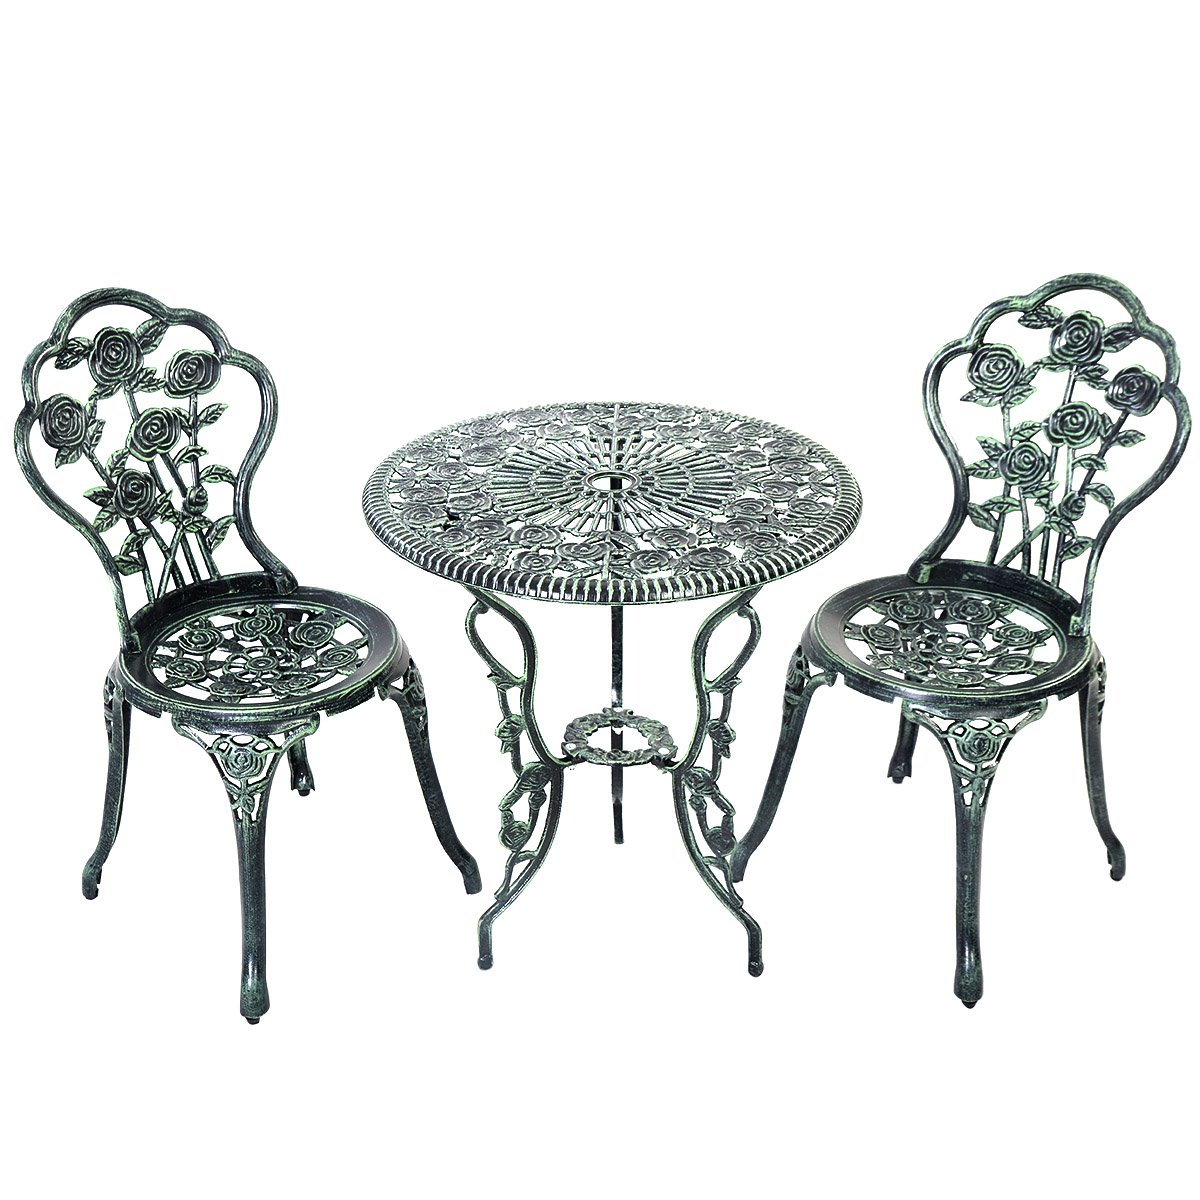 Giantex Patio Furniture Cast Aluminum Rose Design Bistro Set Antique Green (Green) 0